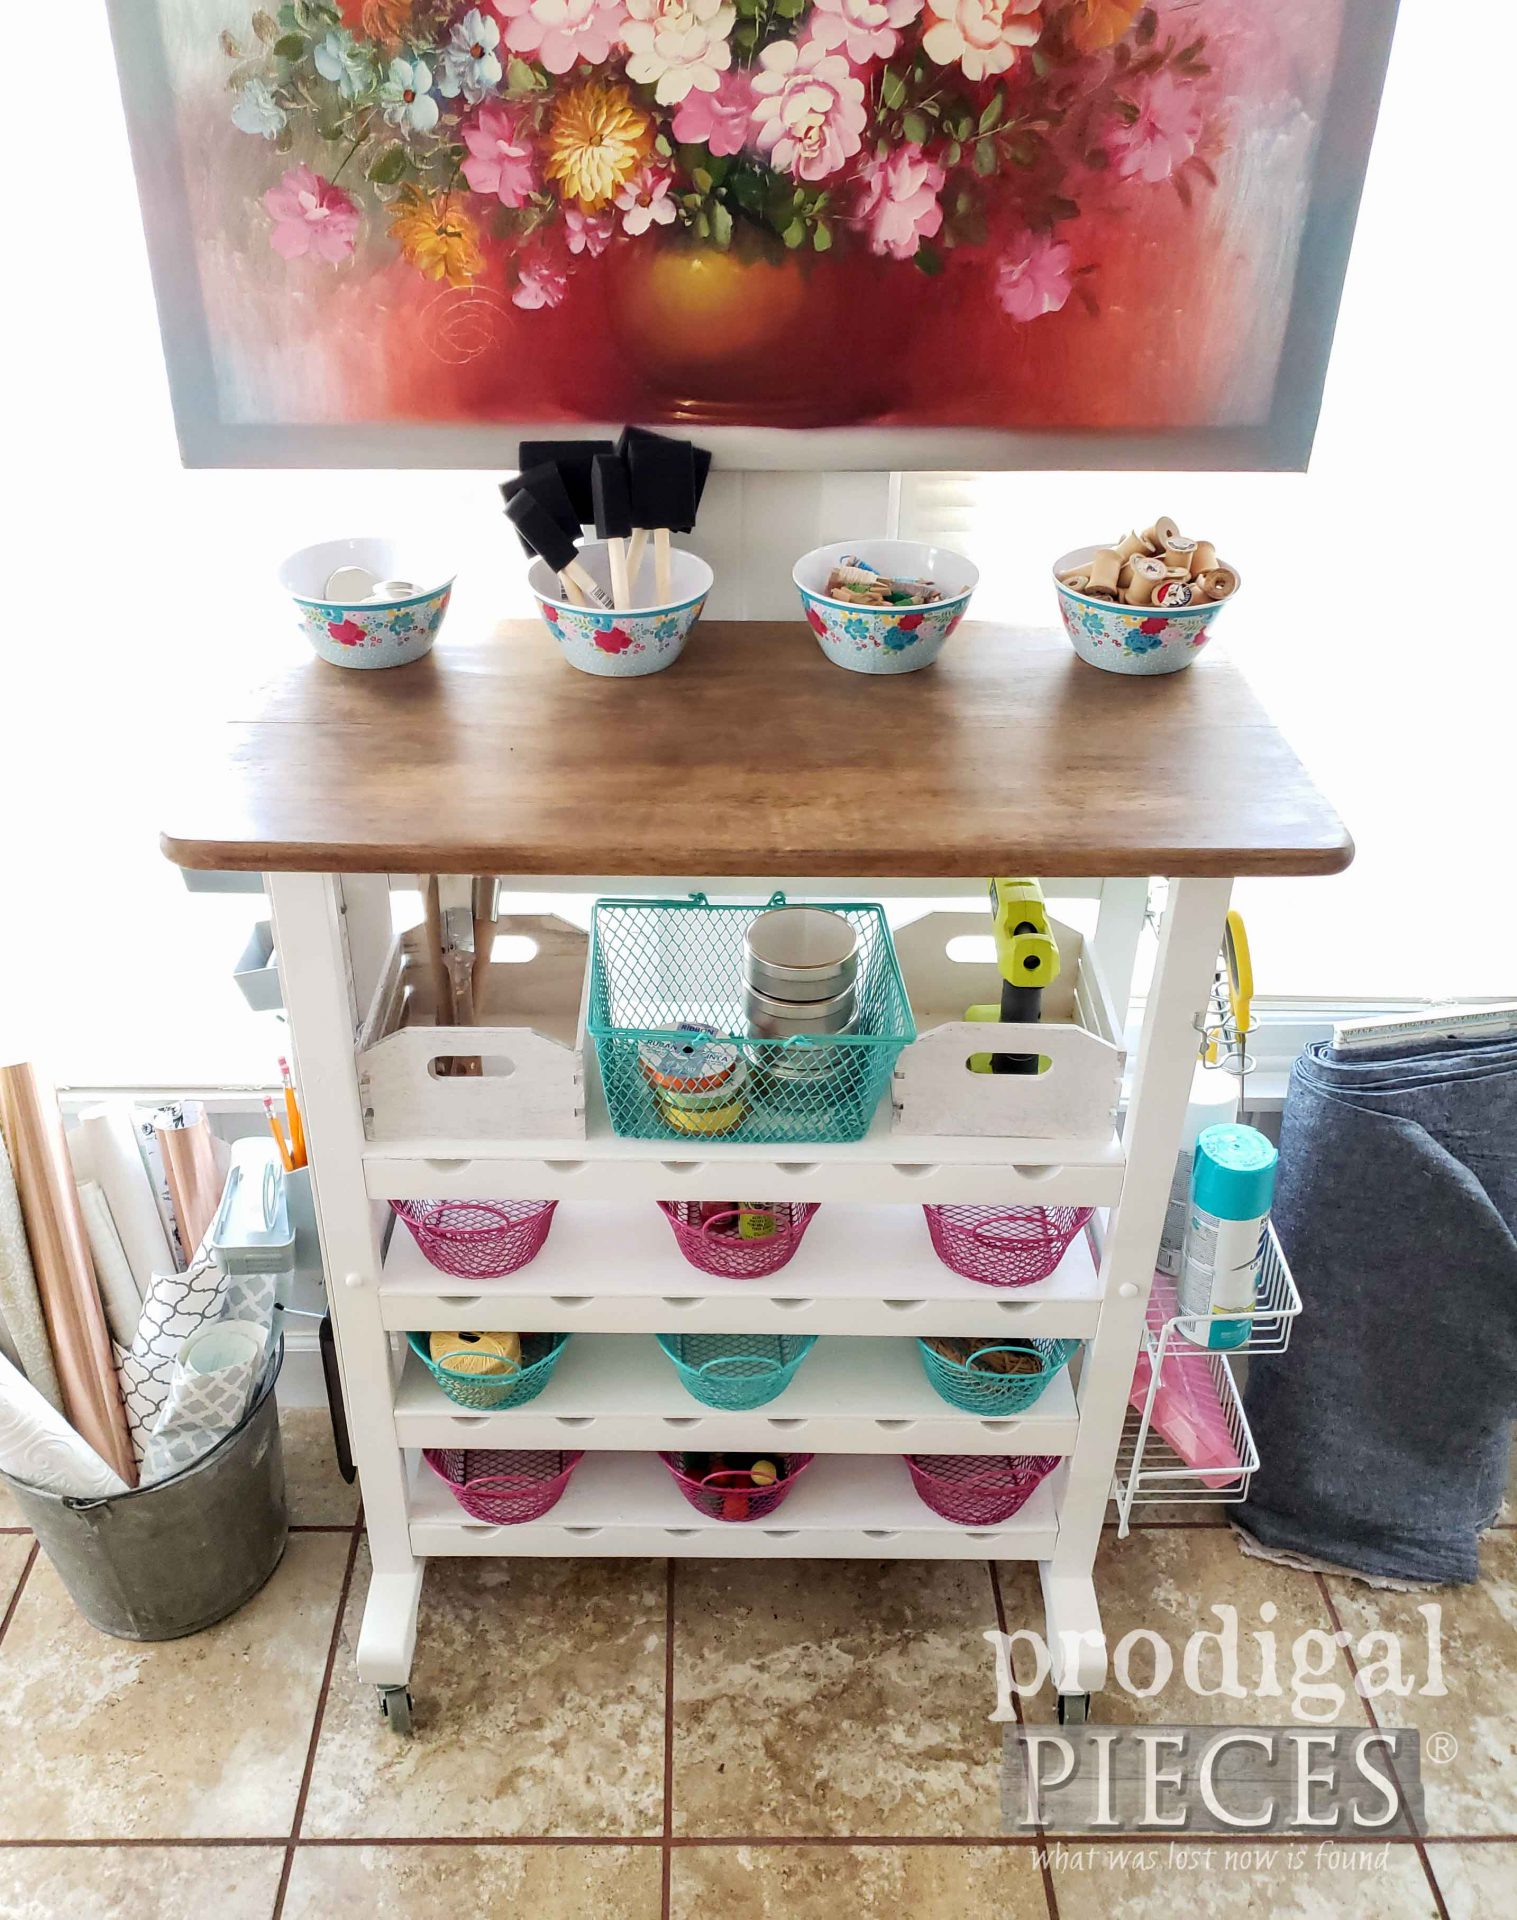 Upcycled Craft Cart Wood Top by Larissa by Larissa of Prodigal Pieces | prodigalpieces.com #prodigalpieces #crafts #diy #home #homedecor